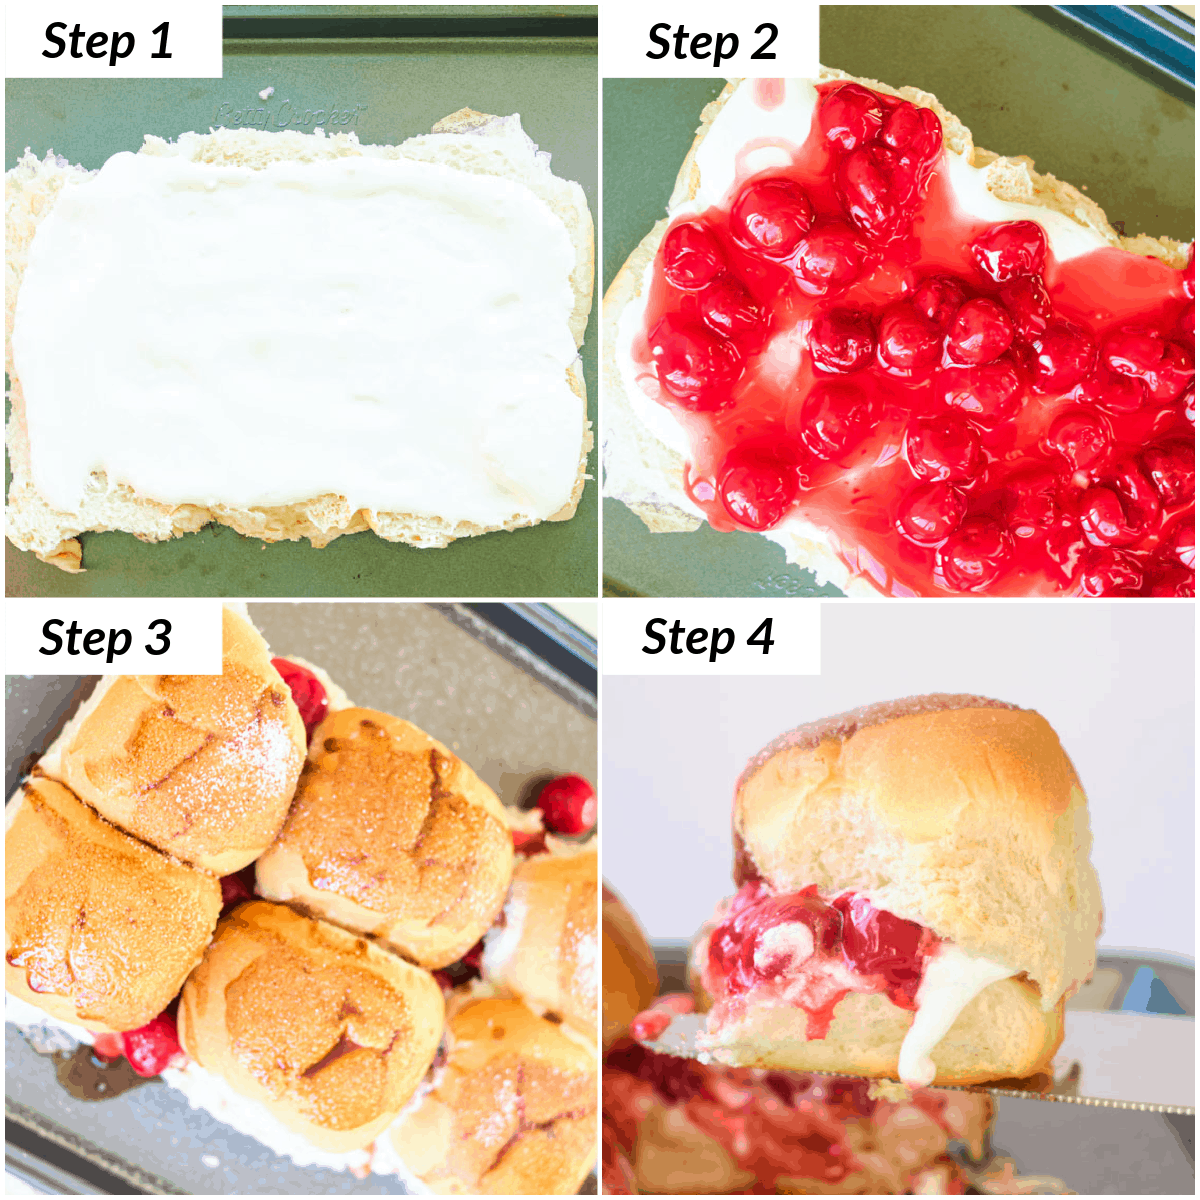 image collage showing the steps for making cherry pie sliders